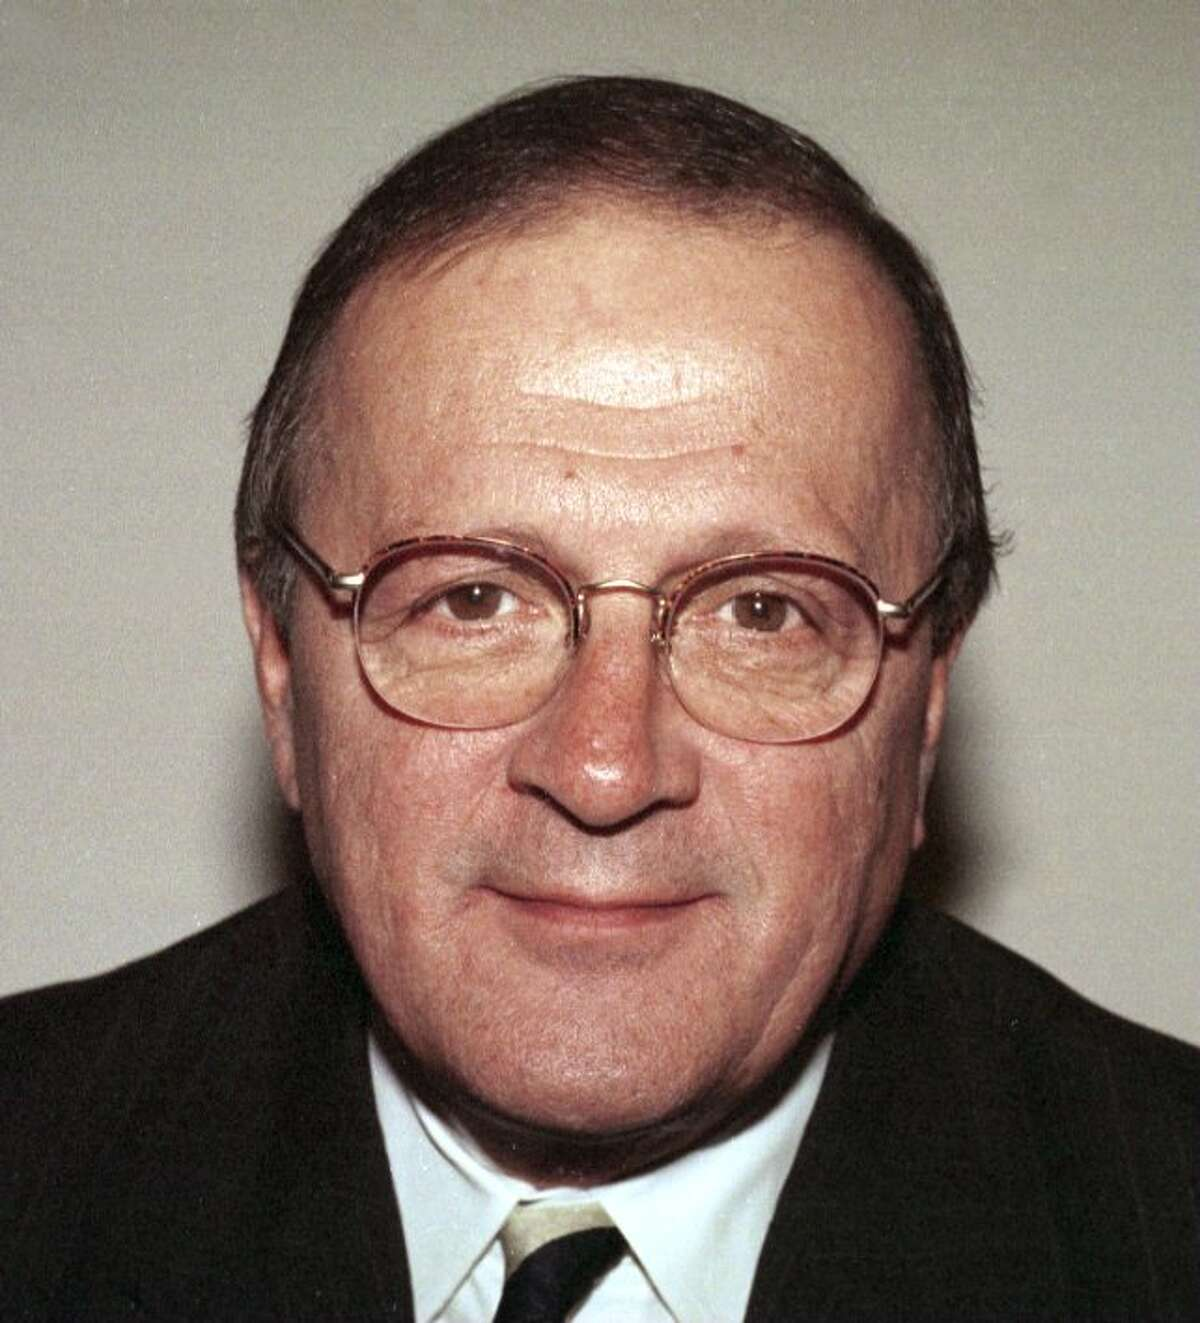 U.S. Rep. Sherwood L. Boehlert profiled by the Times Union in 1997.